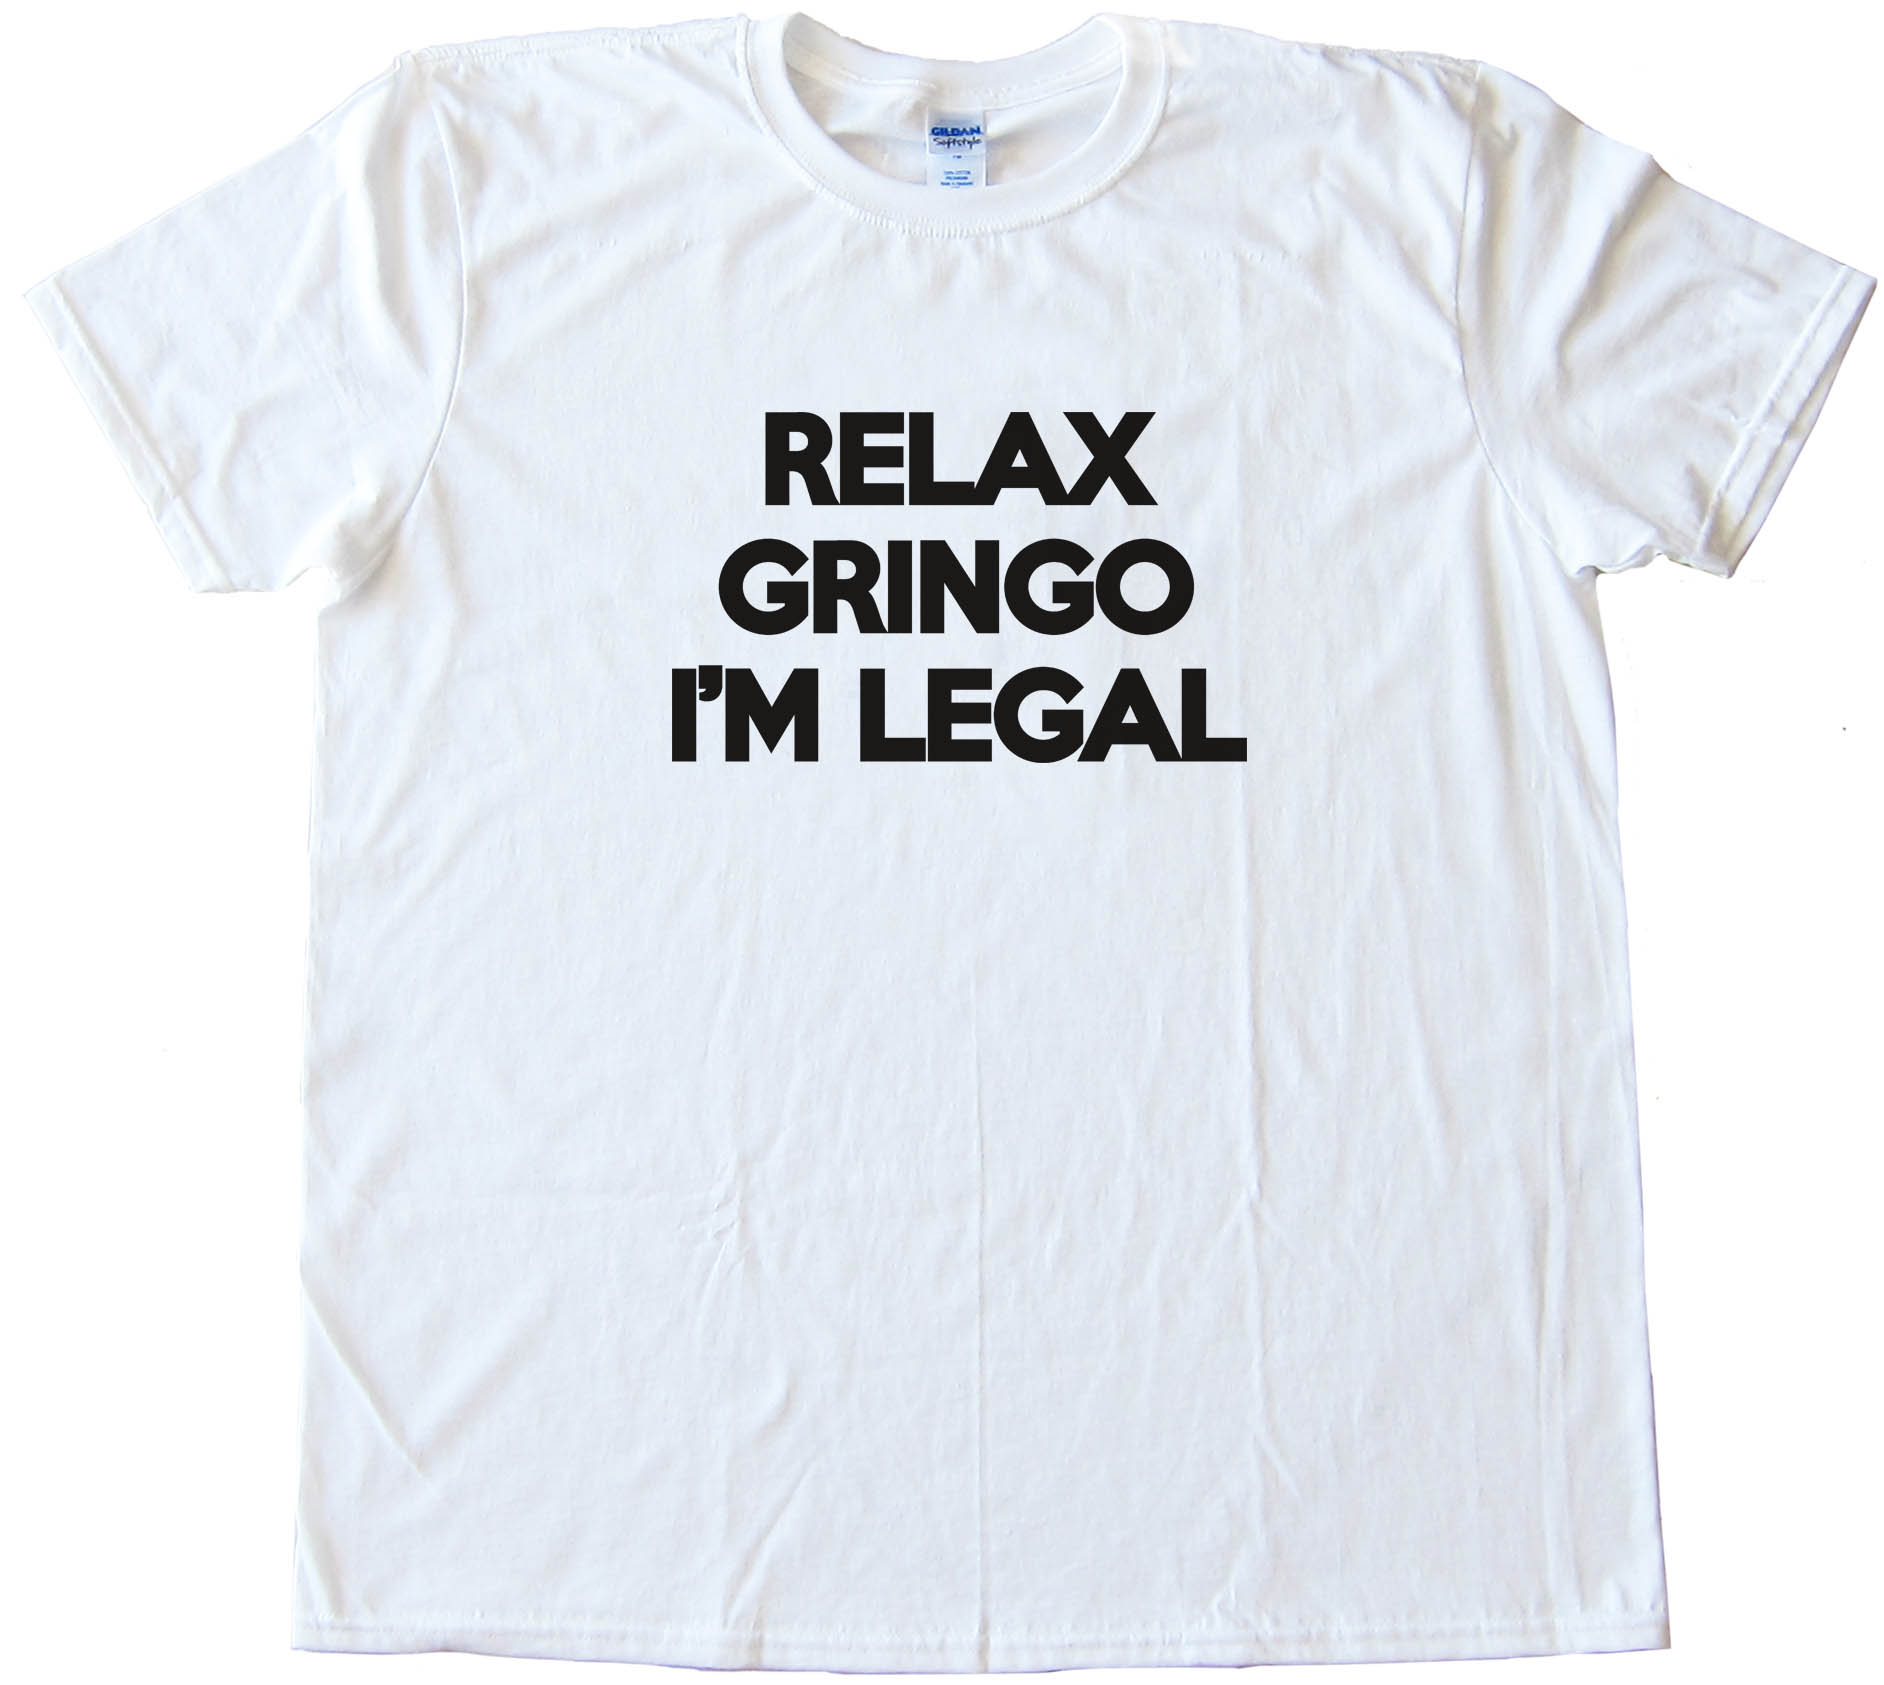 Relax Gringo I'M Legal Tee Shirt